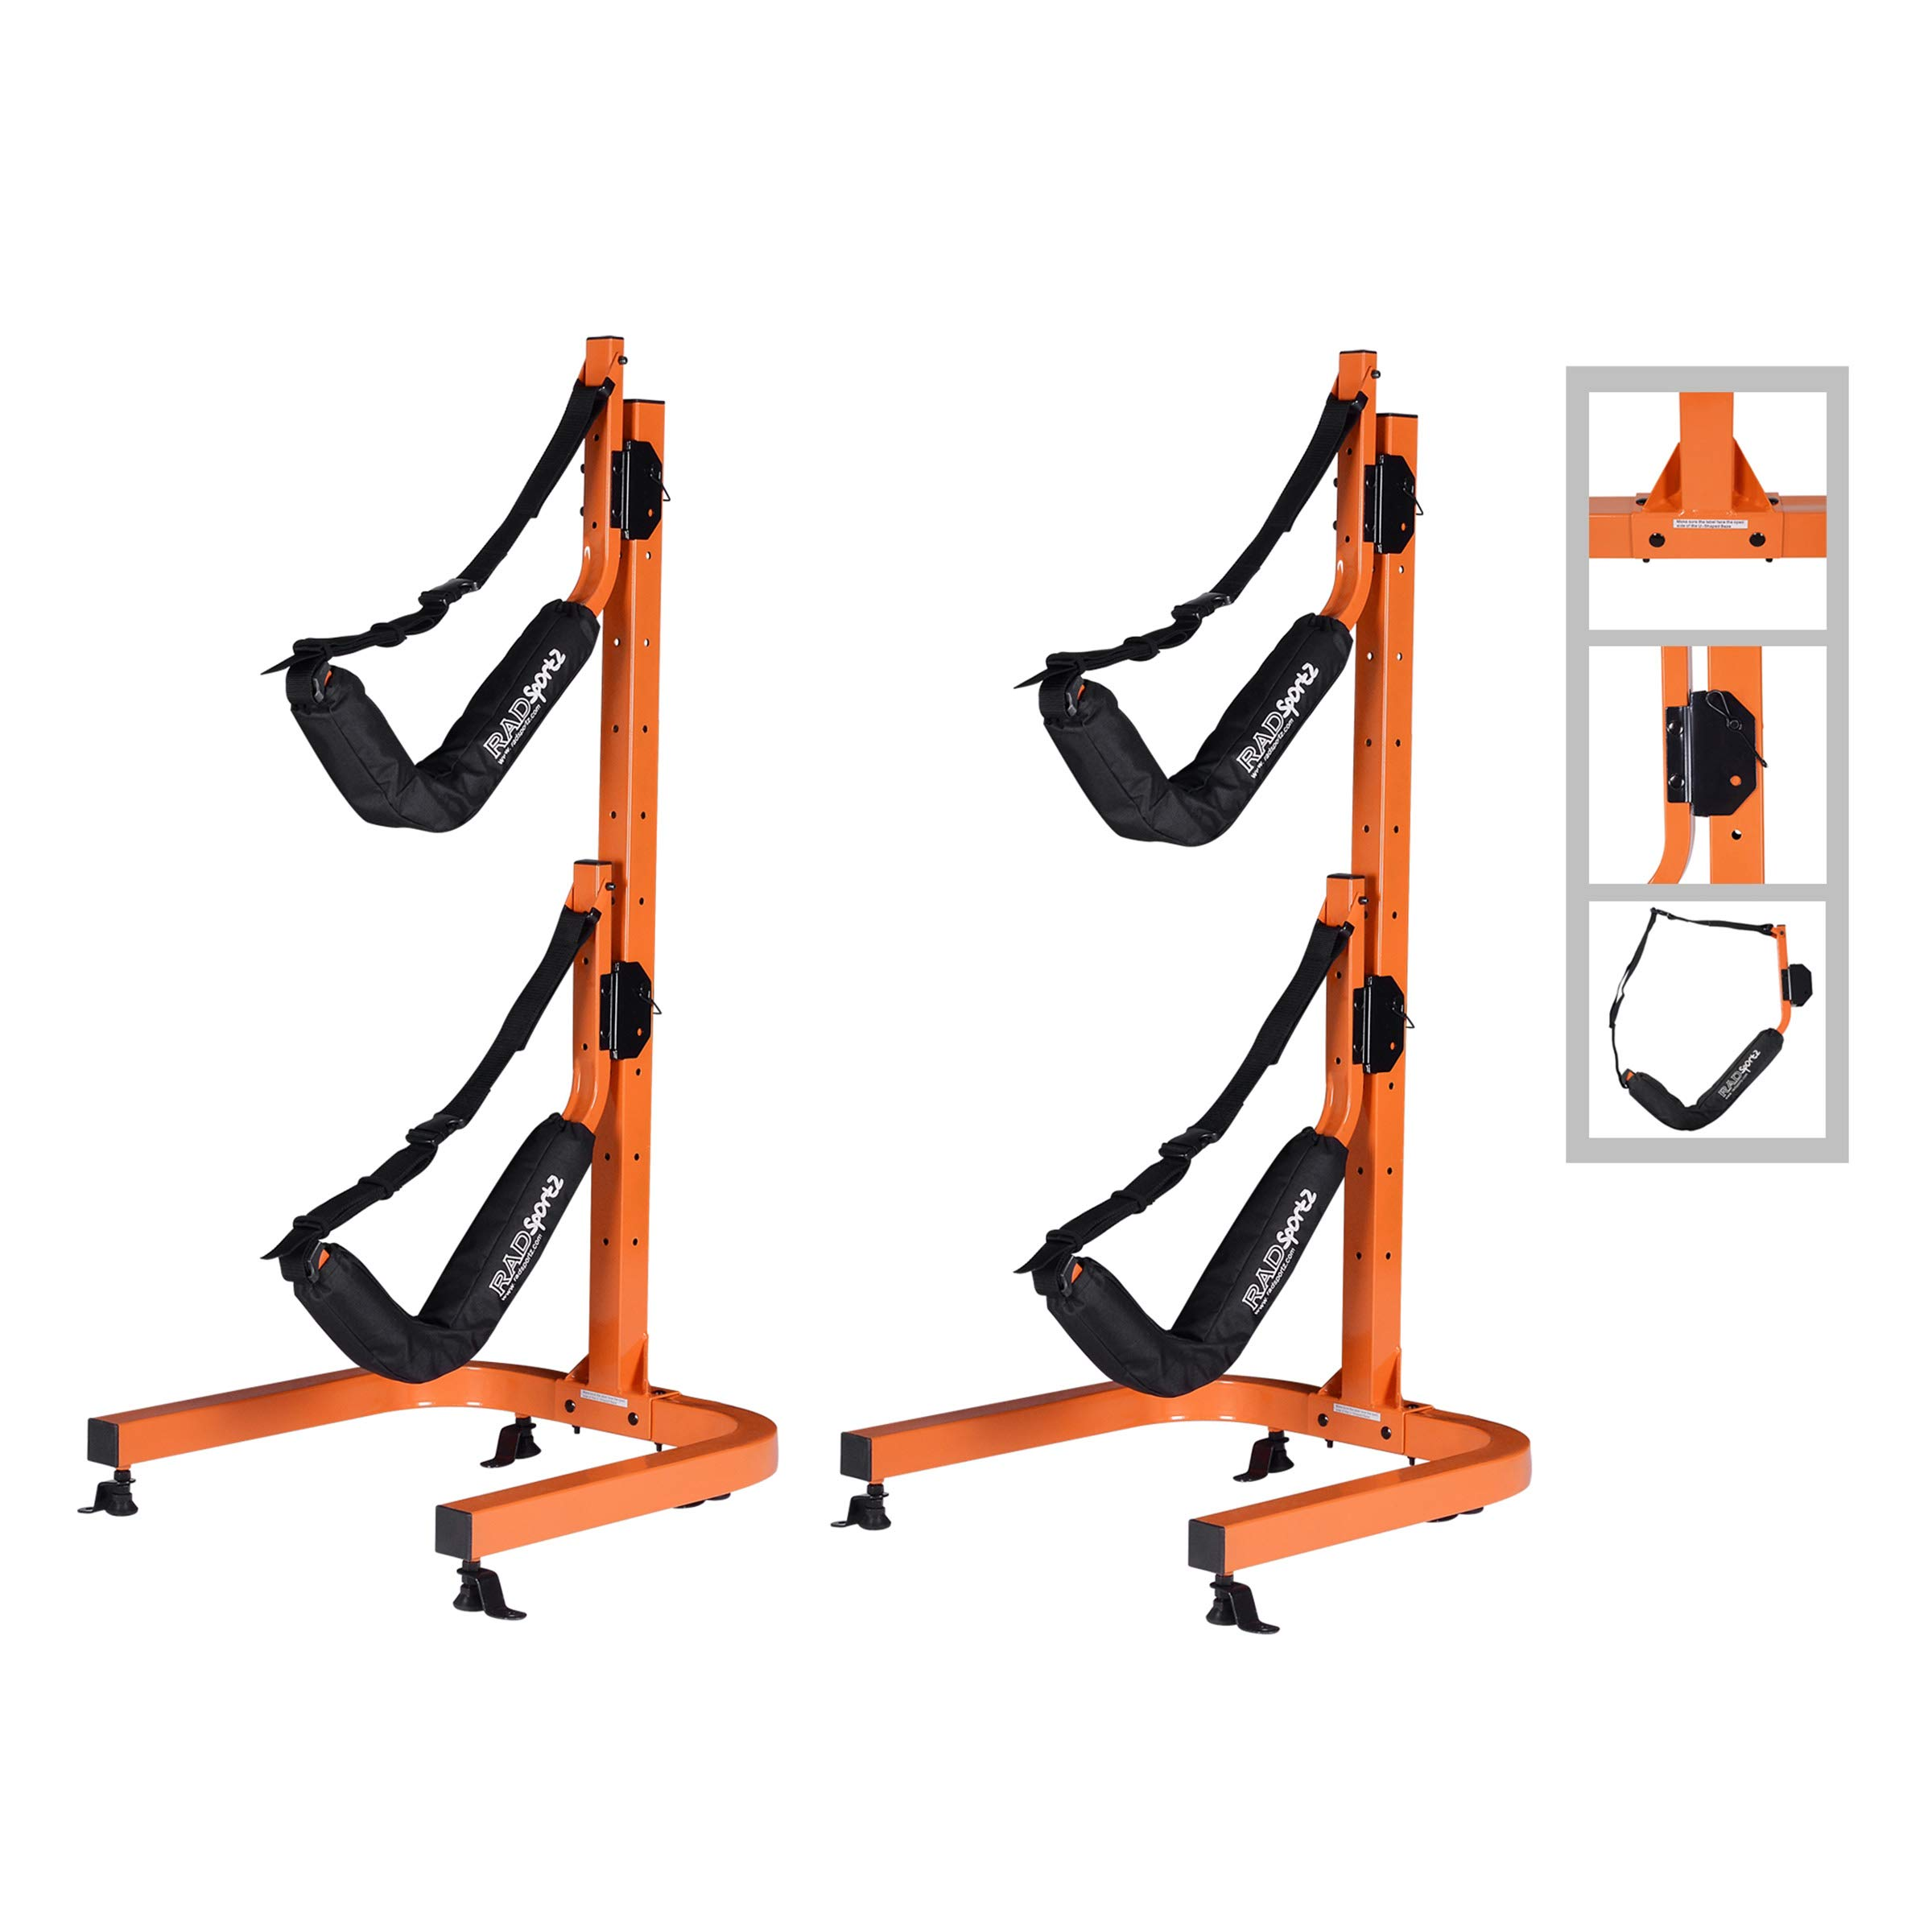 RAD Sportz Kayak Double Storage Rack- Self Standing 2 Canoes Kayaks Cradle Set with Adjustable Safety Strap System for Outdoor and Indoor Use by RAD Sportz